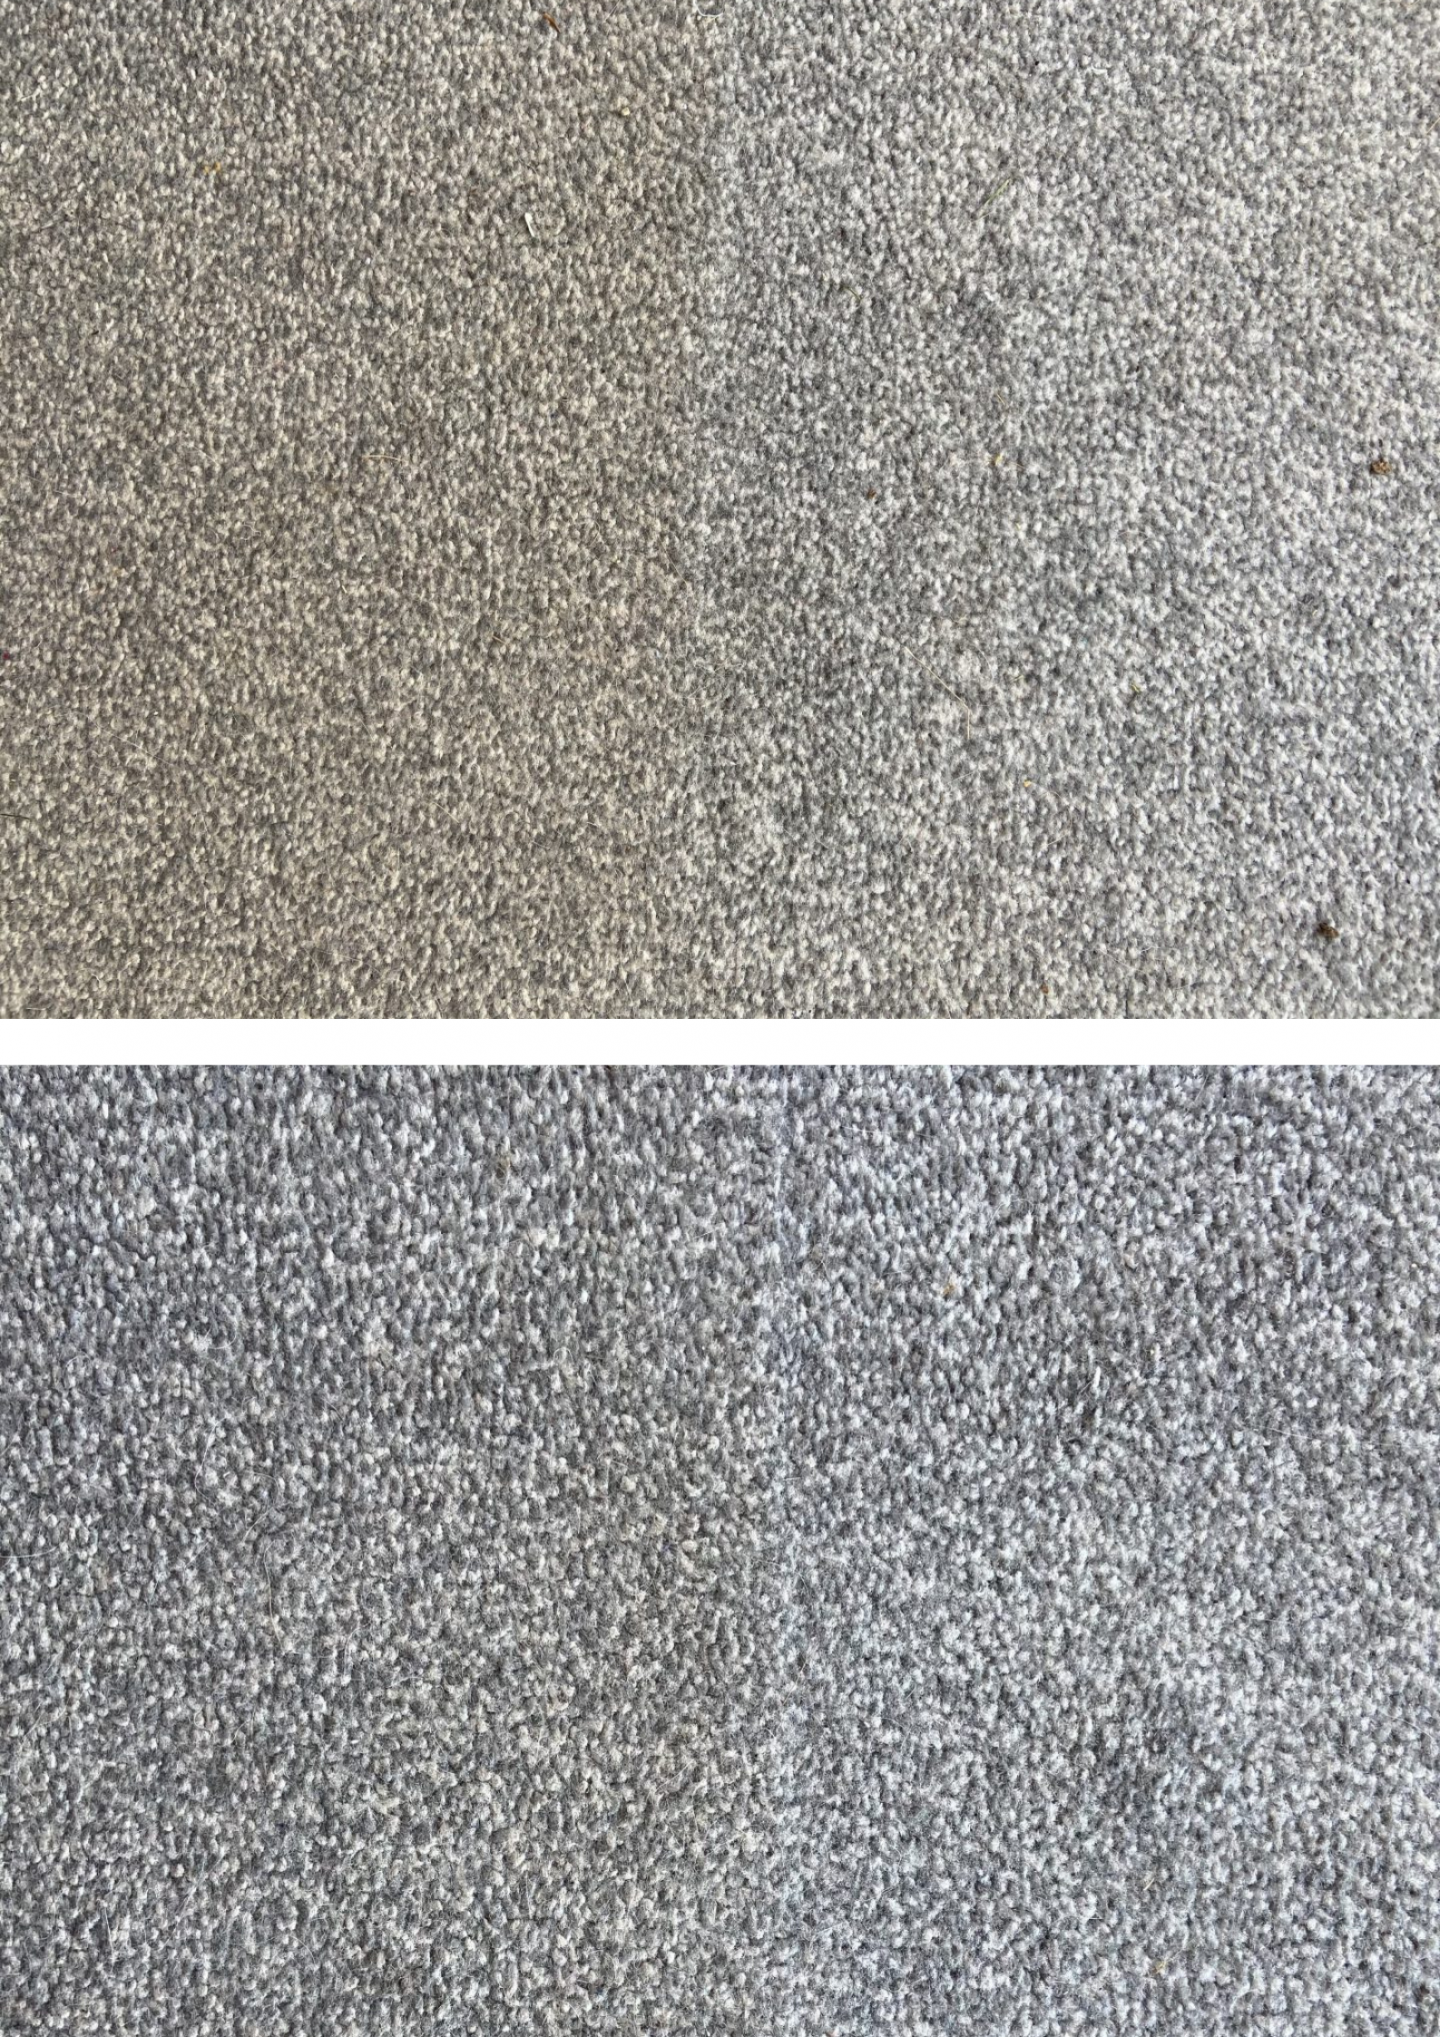 Do home carpet cleaners work?